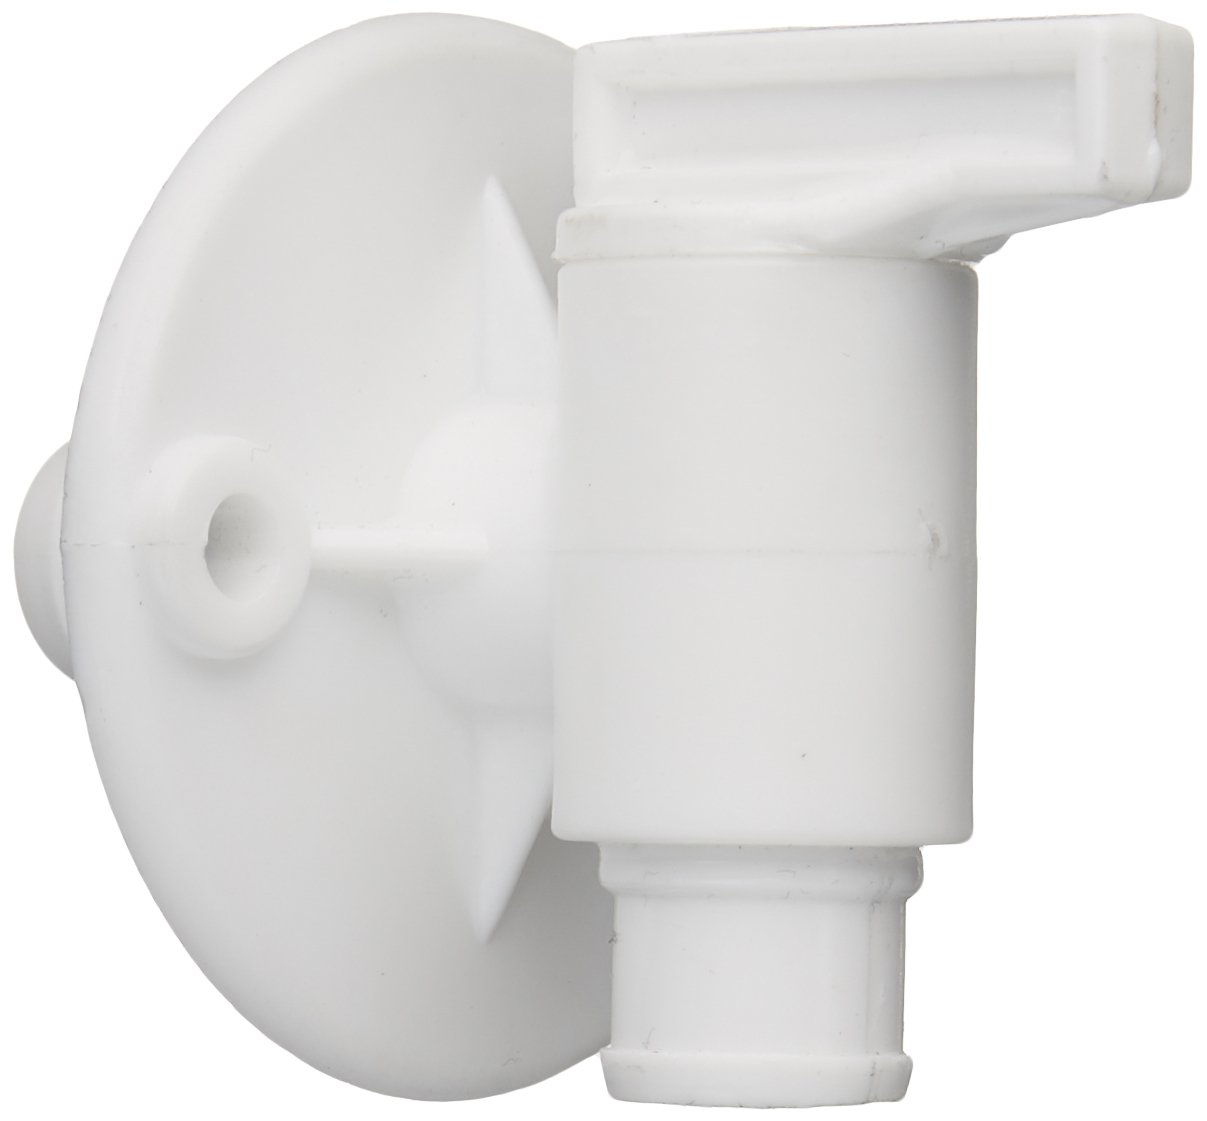 Petersen Molding 18958aw Fresh Water Tank Drain Valve Dual Hose Size To Fit 1//2